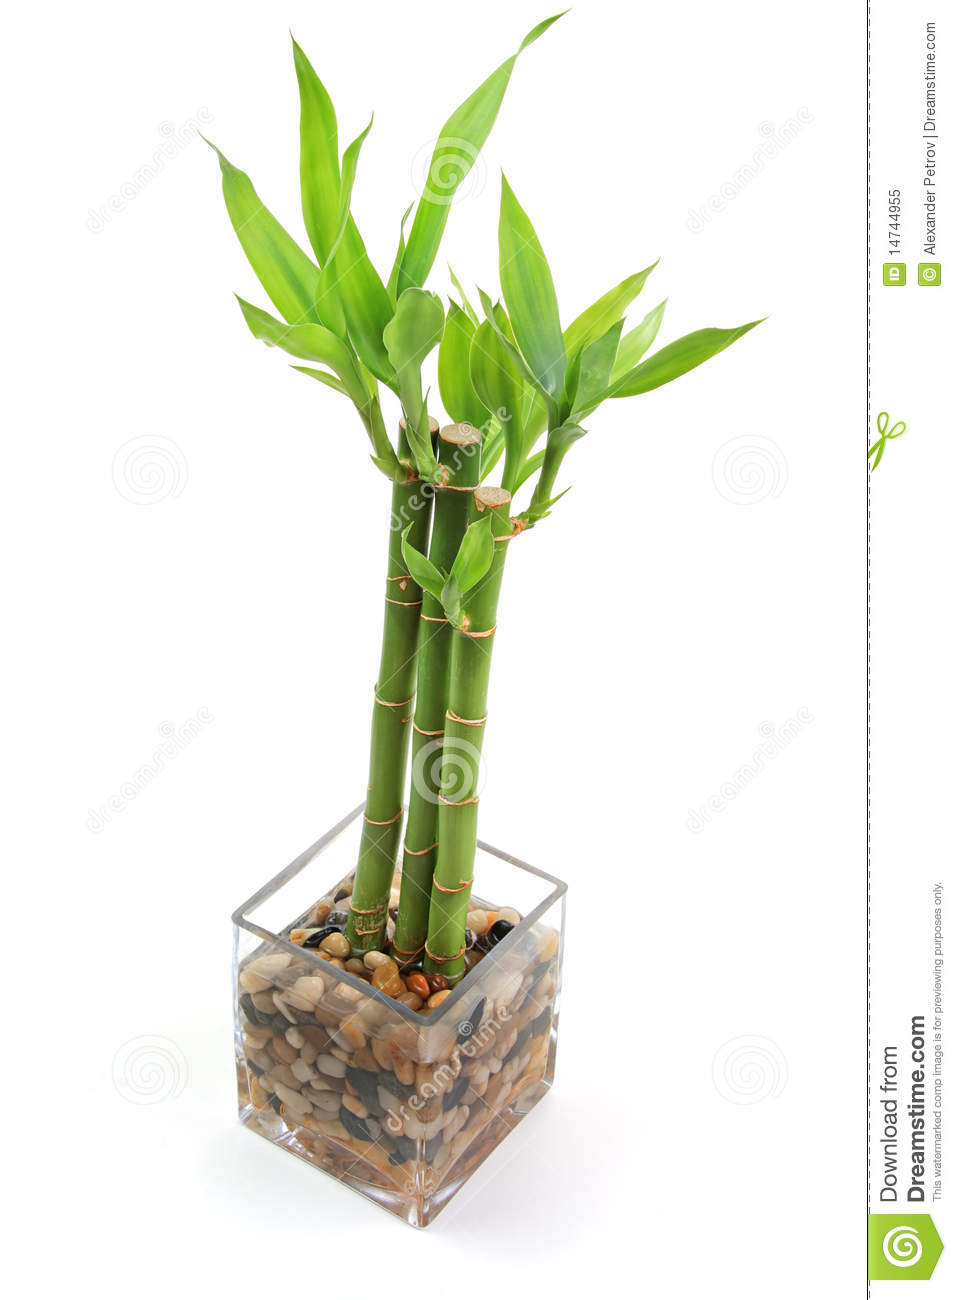 how to raise a bamboo plant